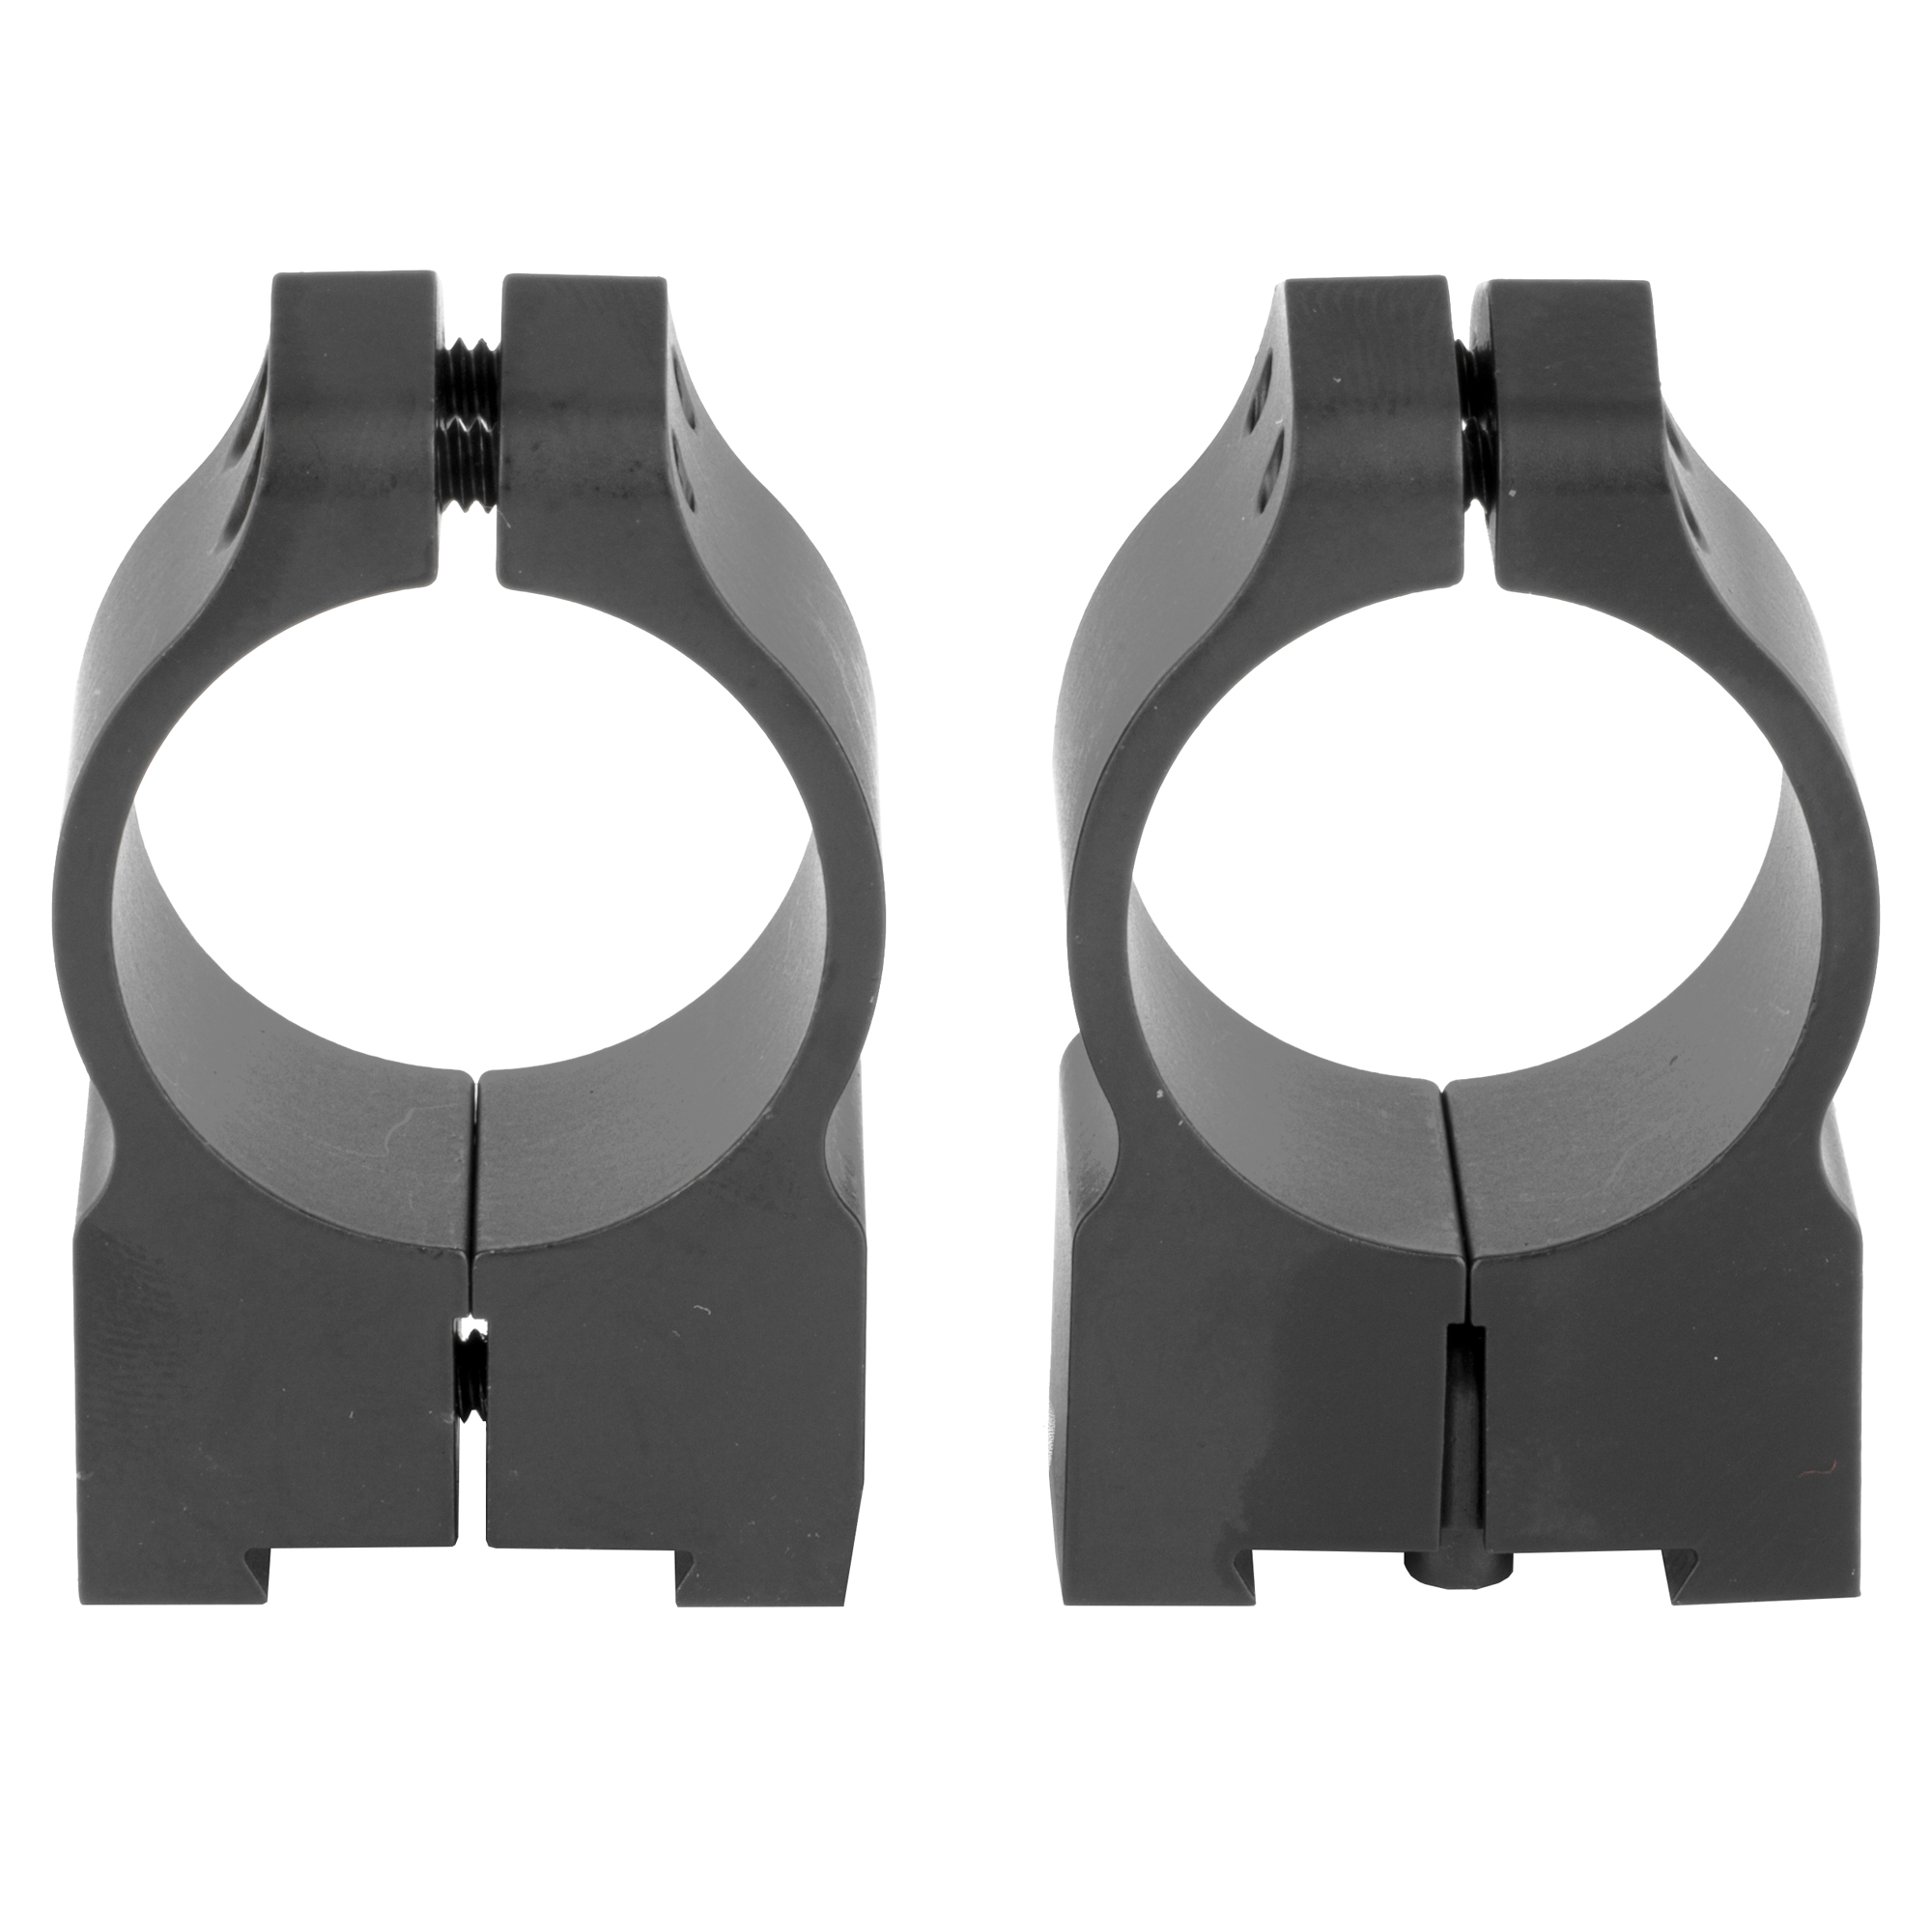 """Since each firearm manufacturer has their own proprietary mounting rail design"""" each ring model must be machined to exacting tolerances for proper fit and function. Because of this"""" the Warne Tikka Rings are able to fit right onto the receiver's dovetail with no need for a mounting base."""